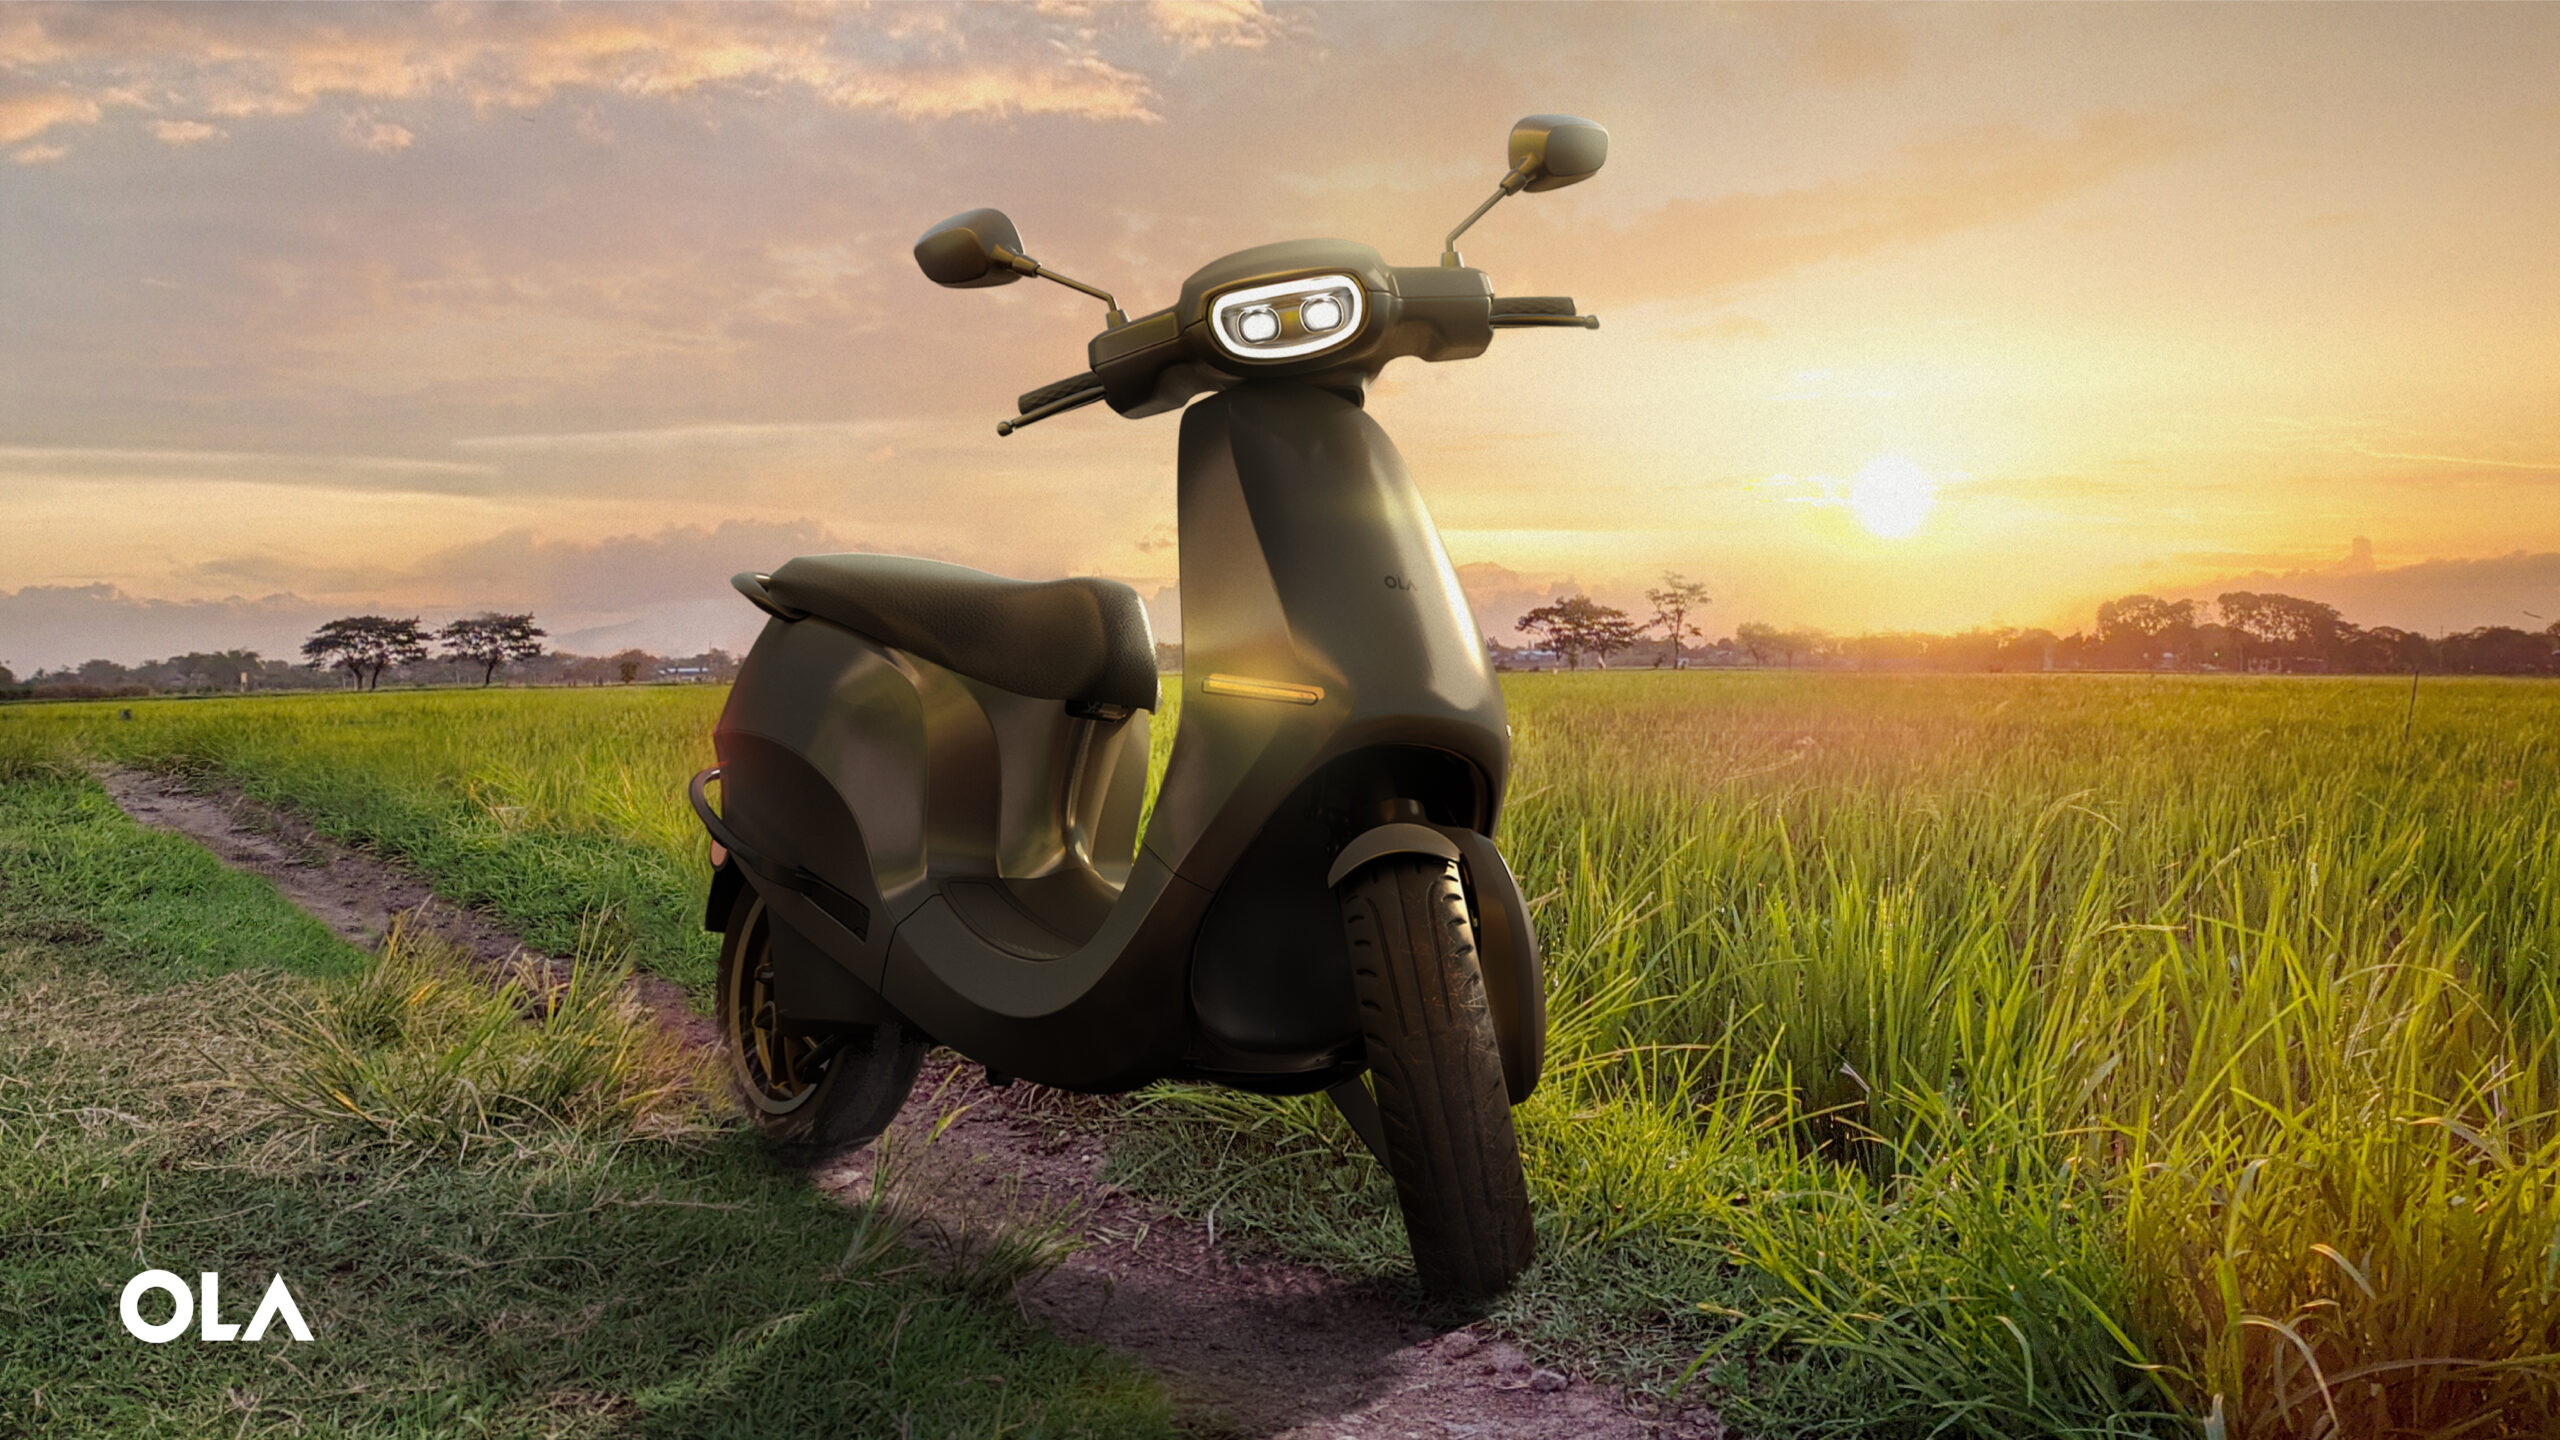 Ola Electric Scooter gets 100